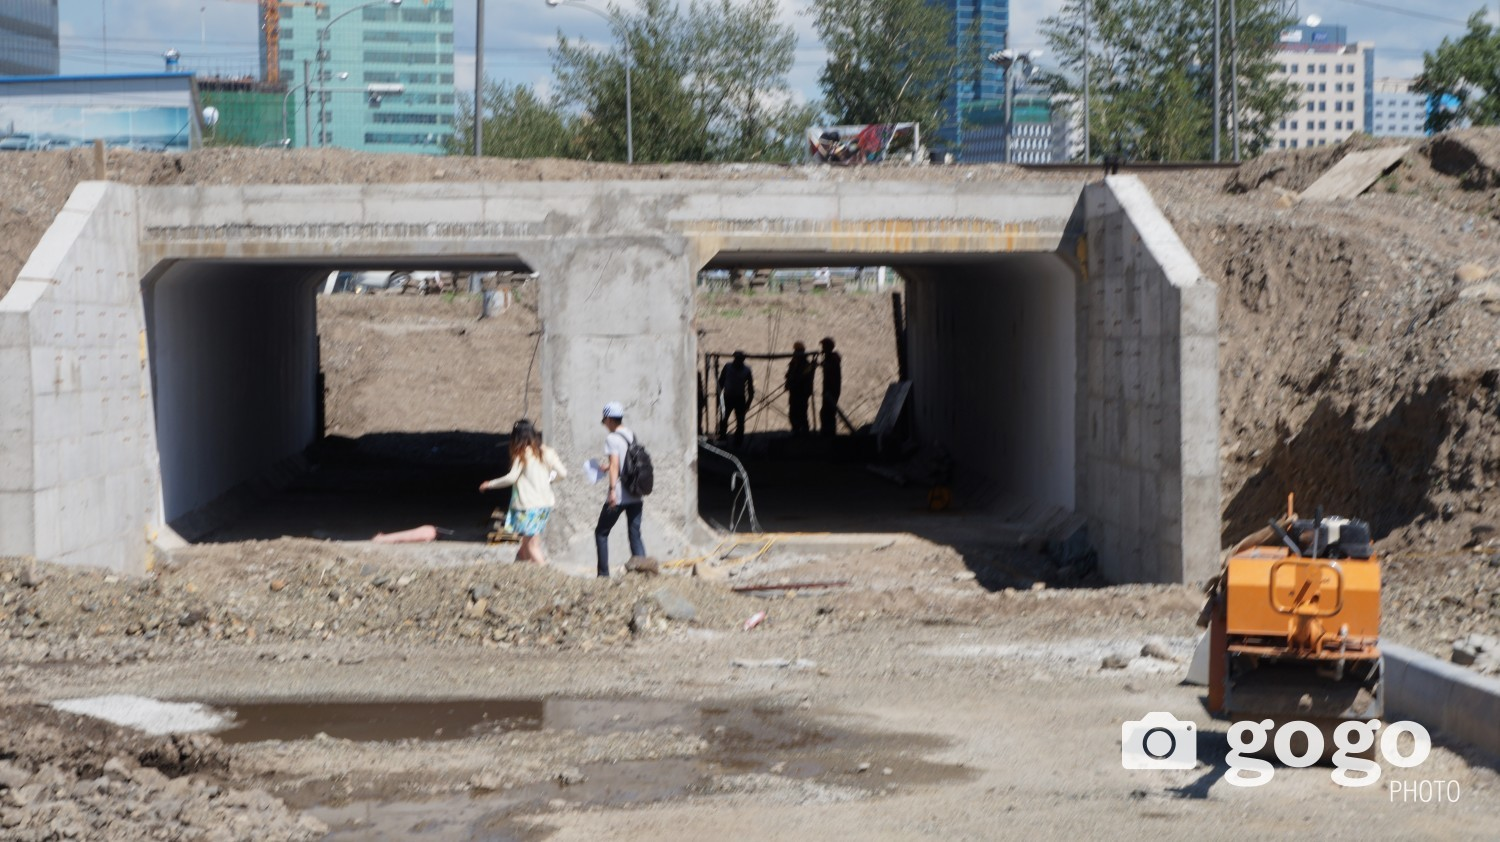 Due to height of the tunnel is 2.3 meter, only jeeps and small vehicles are available.